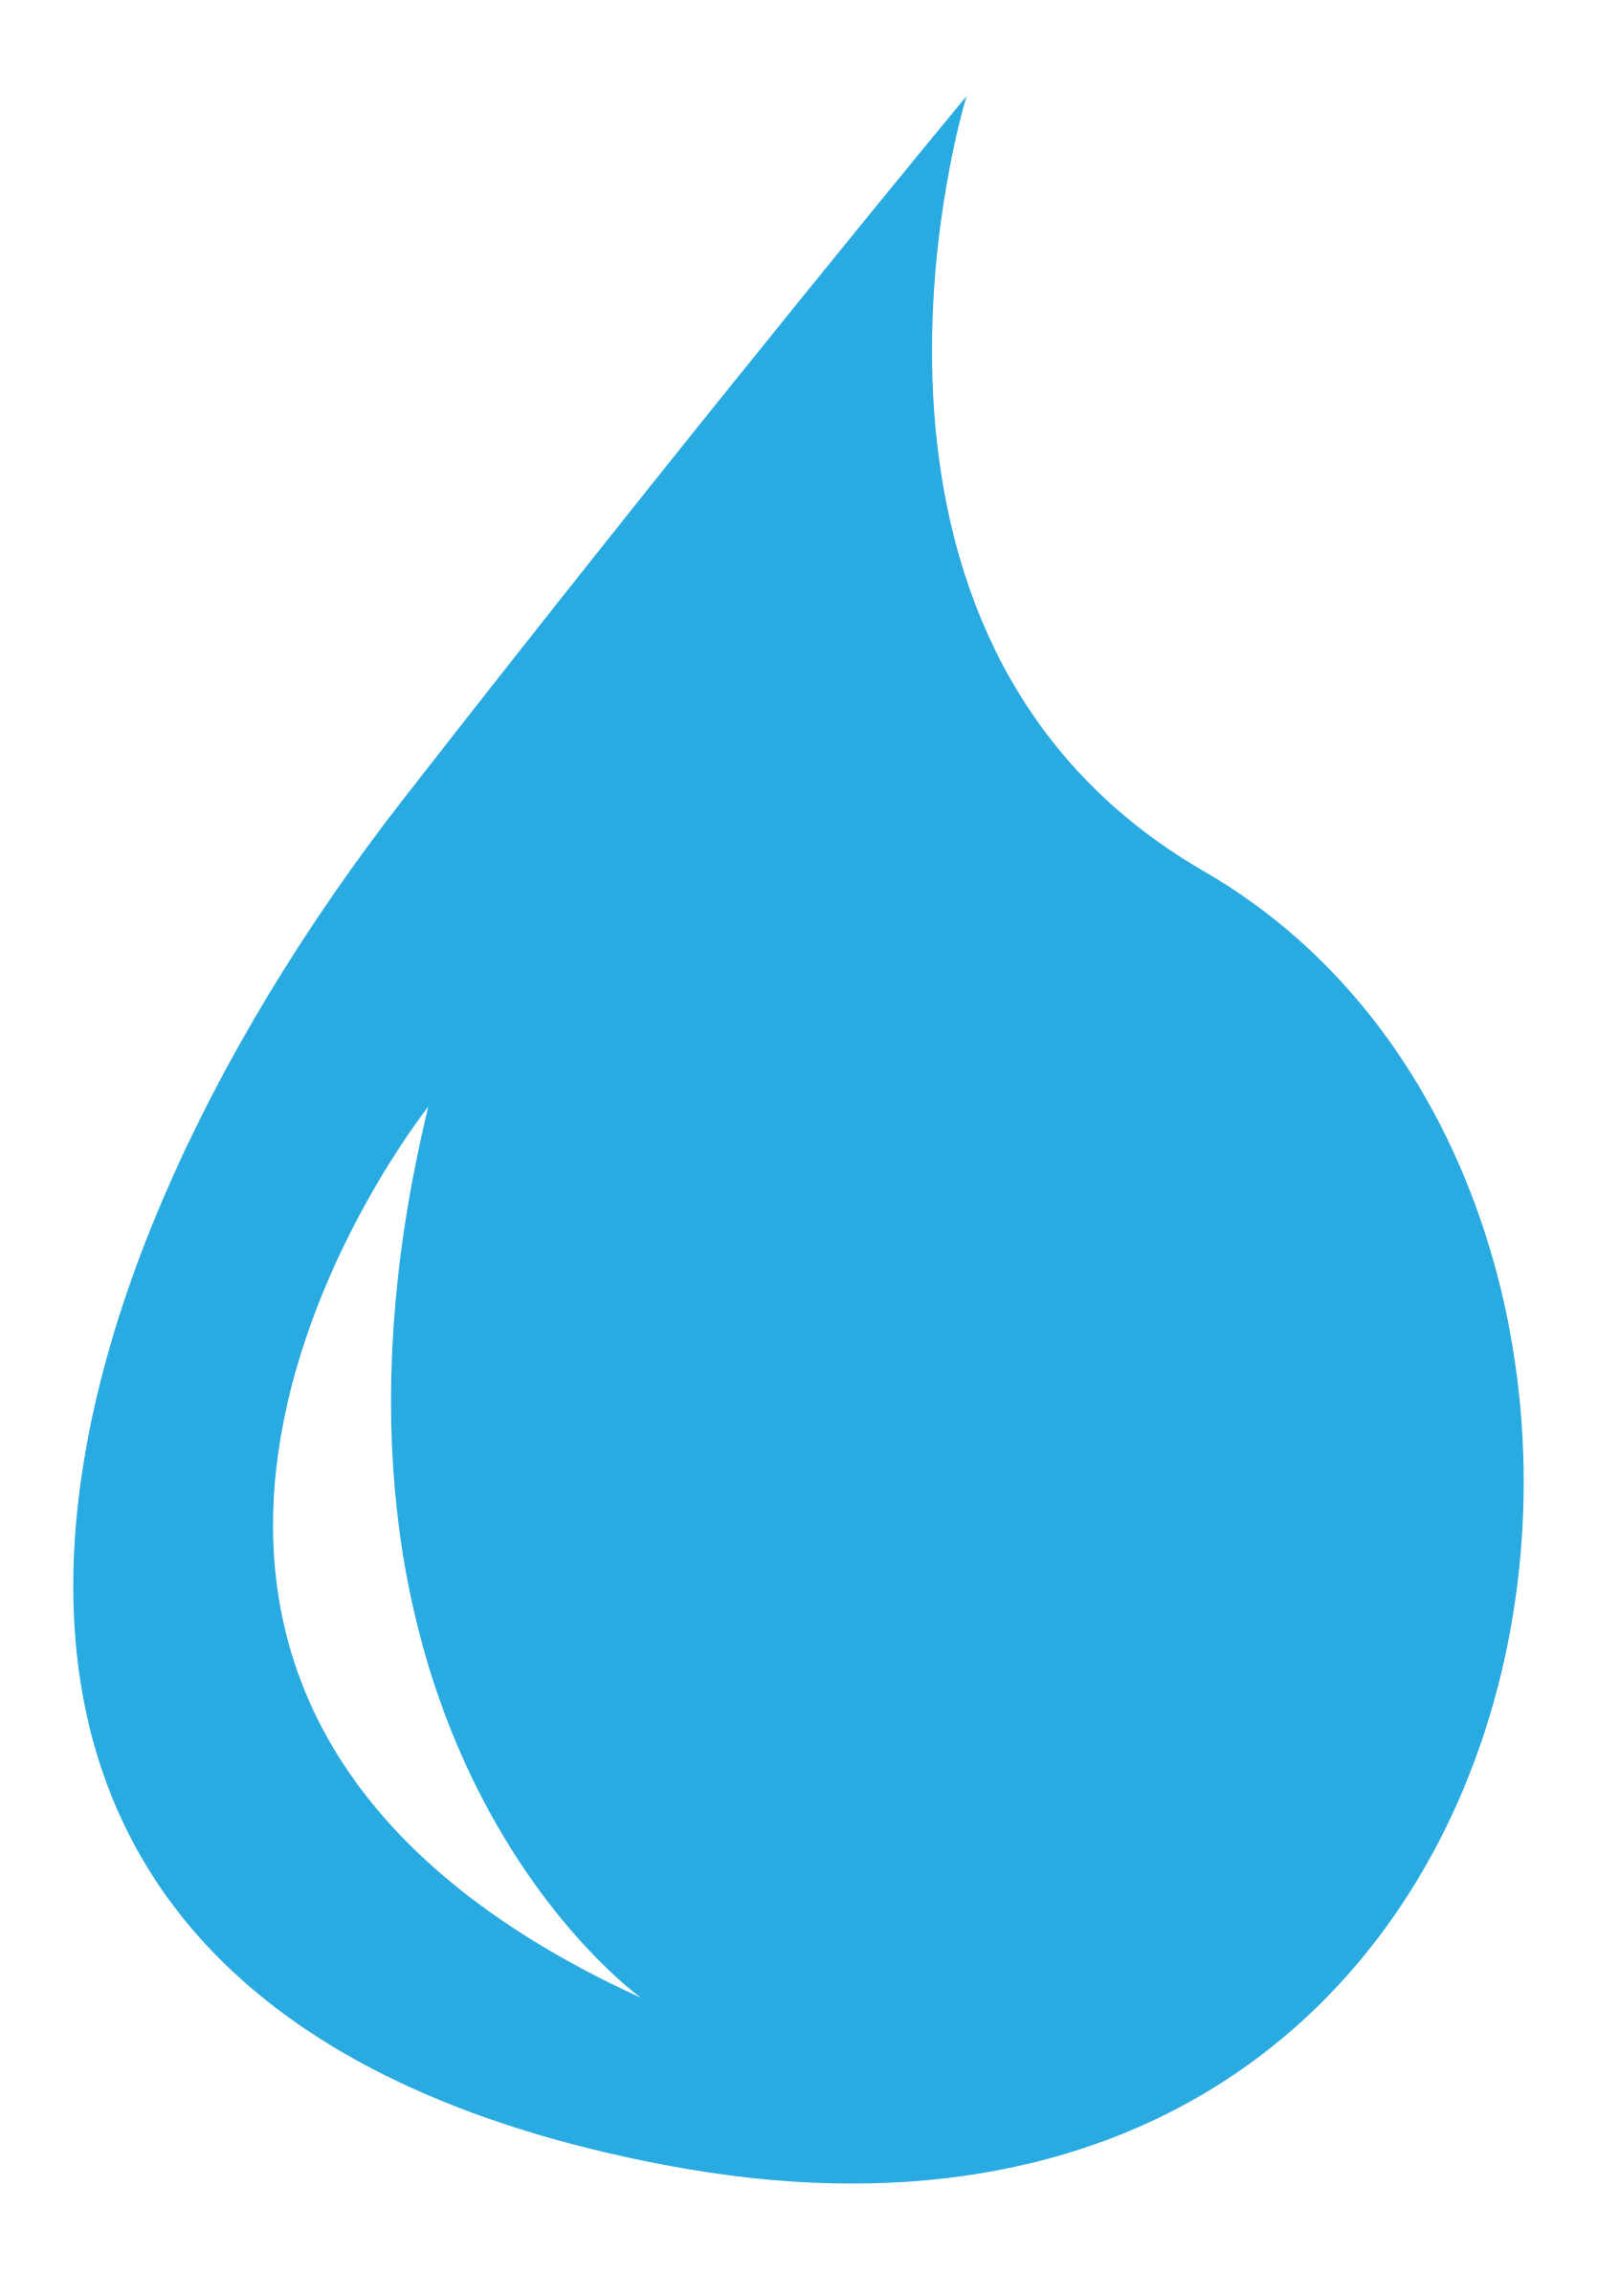 Sweat drip png. Collection of drop